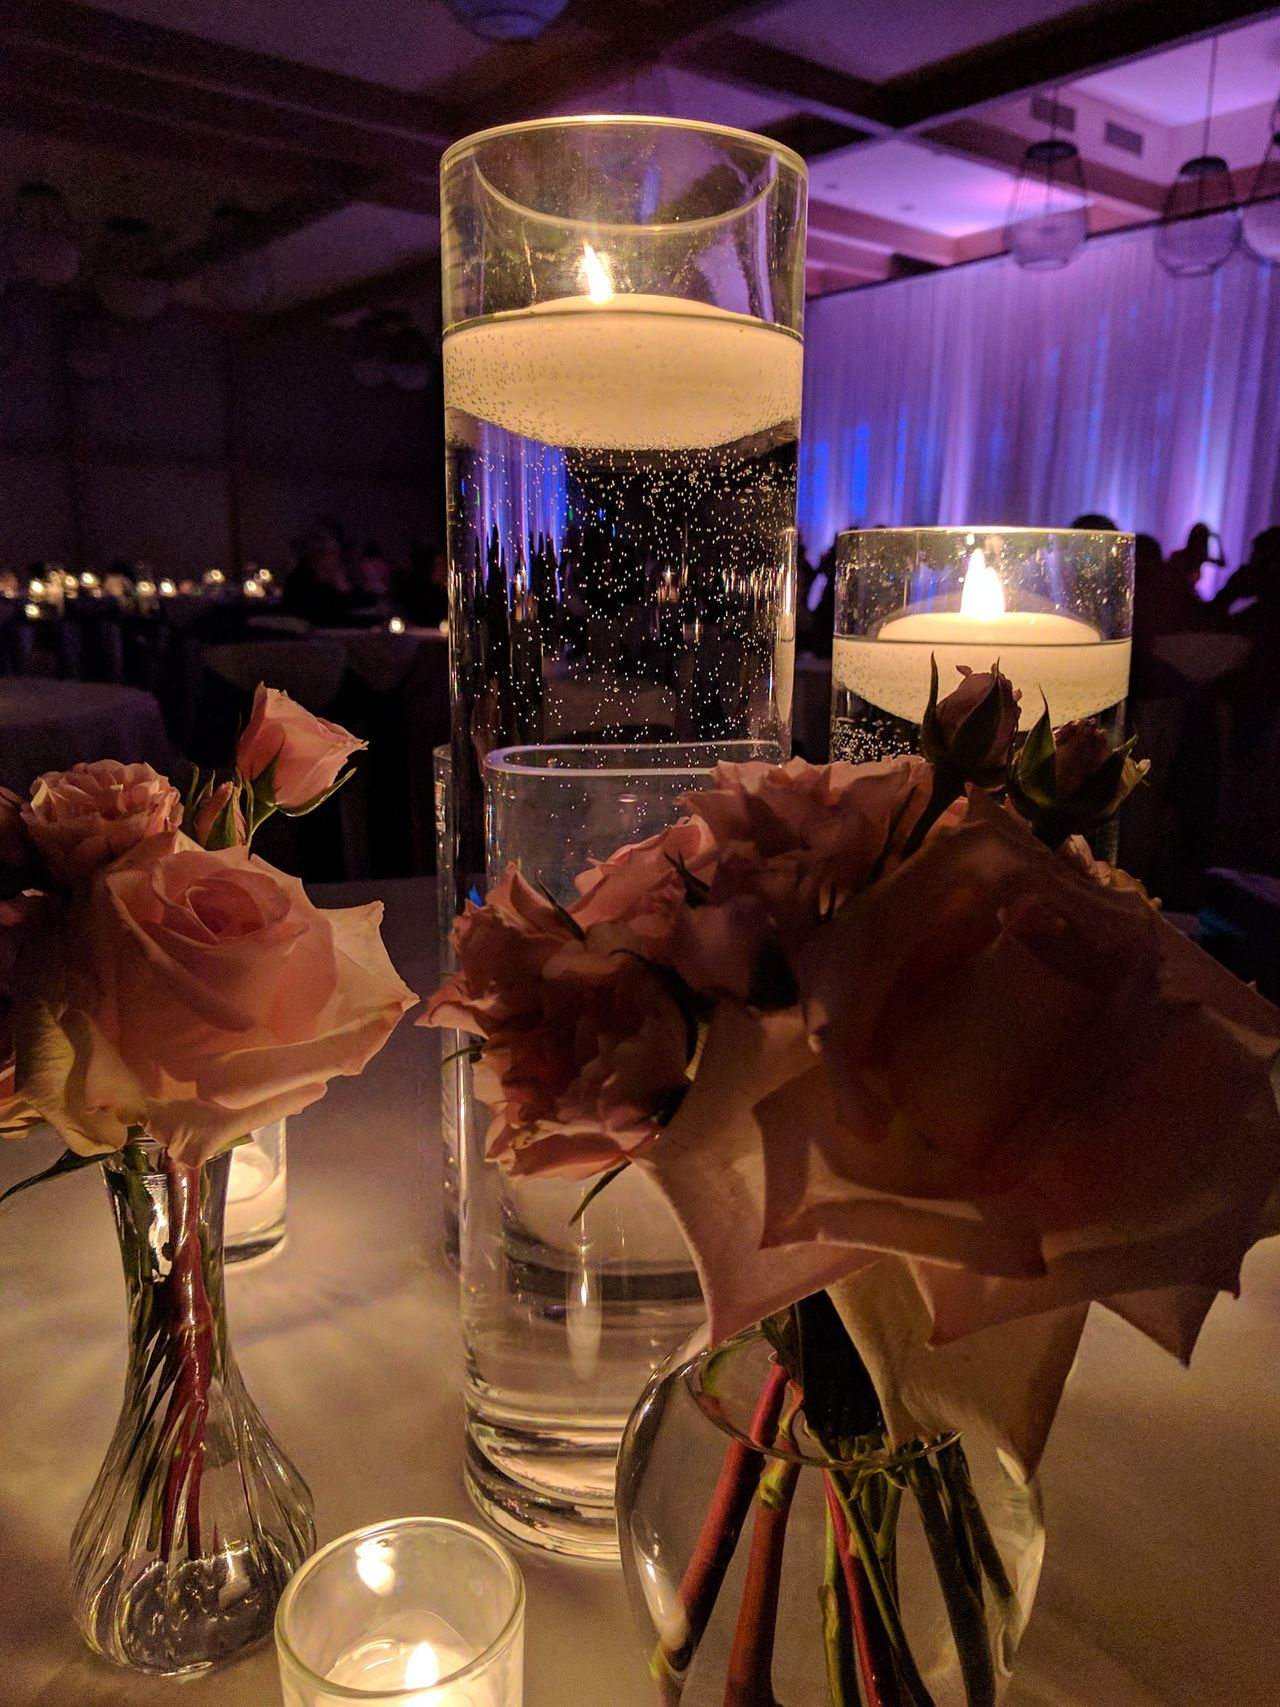 wedding reception table centerpieces and candles Low Light Photography Indoors  No People Taking Photos EyeEm Gallery Indoors  Reception Night Photography Candles Eyem Gallery Celebration Roses🌹 Roses